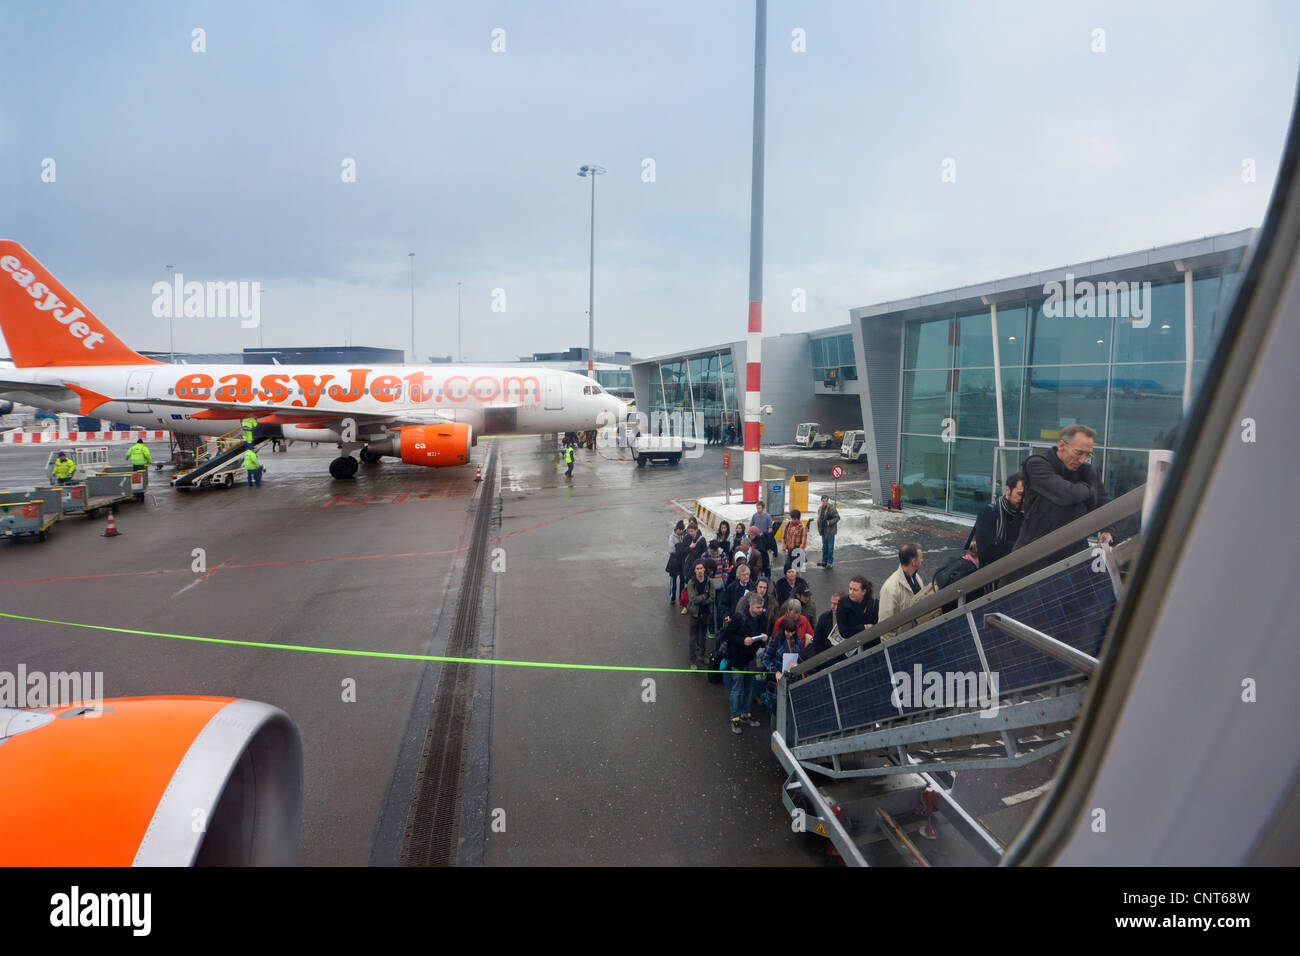 Amsterdam Schiphol Airport People boarding EasyJet plane airplane aeroplane mobile staircase stairs in winter. H - Stock Image